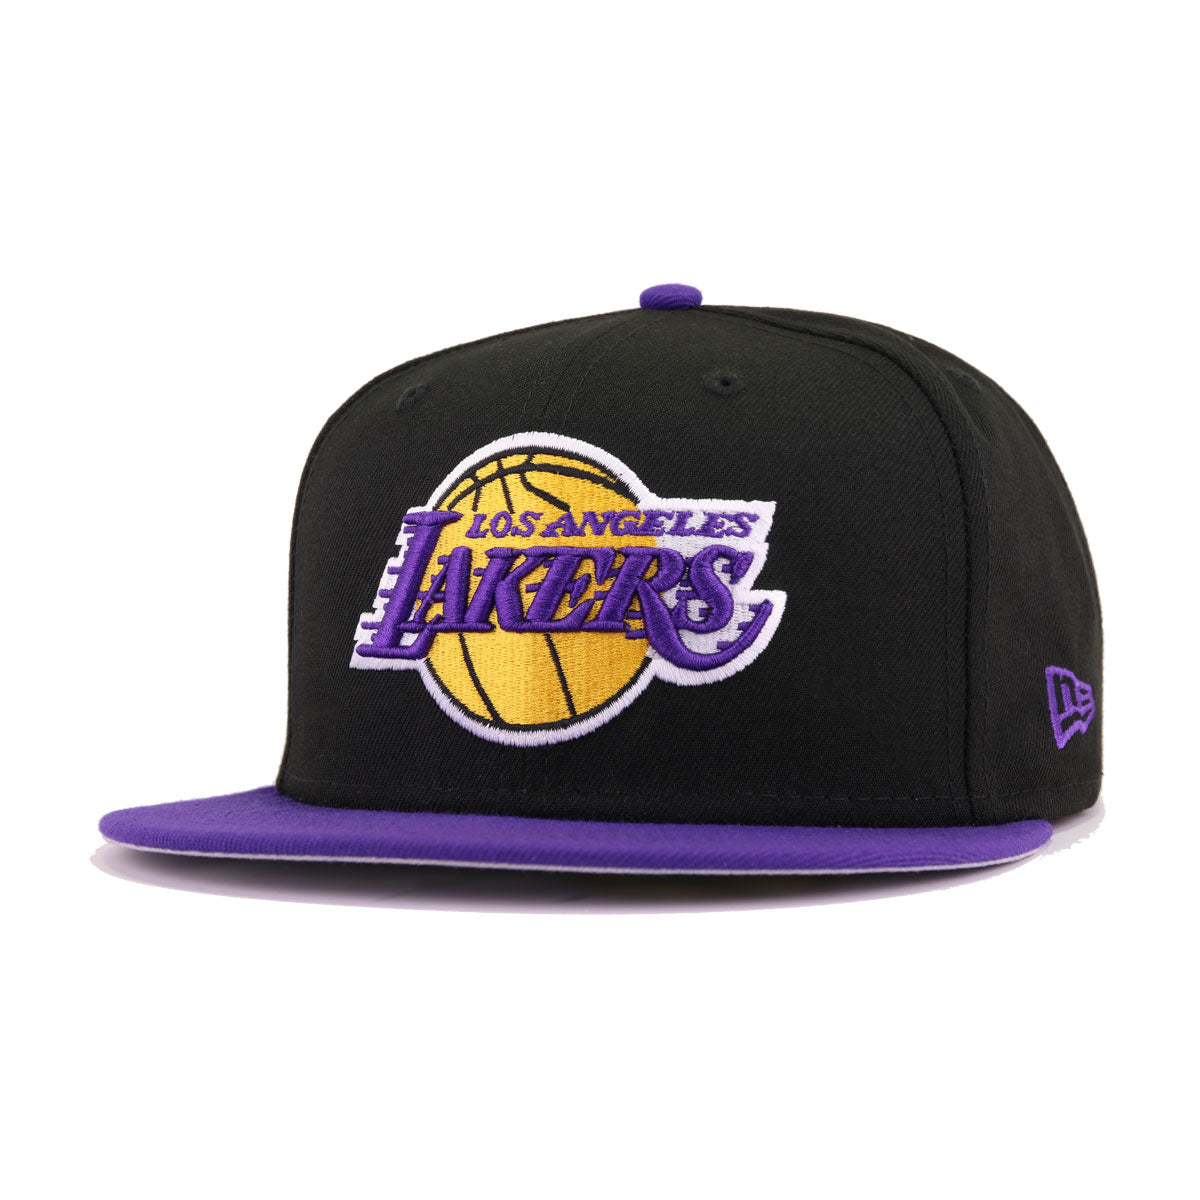 Los Angeles Lakers Black Deep Purple New Era 59Fifty Fitted